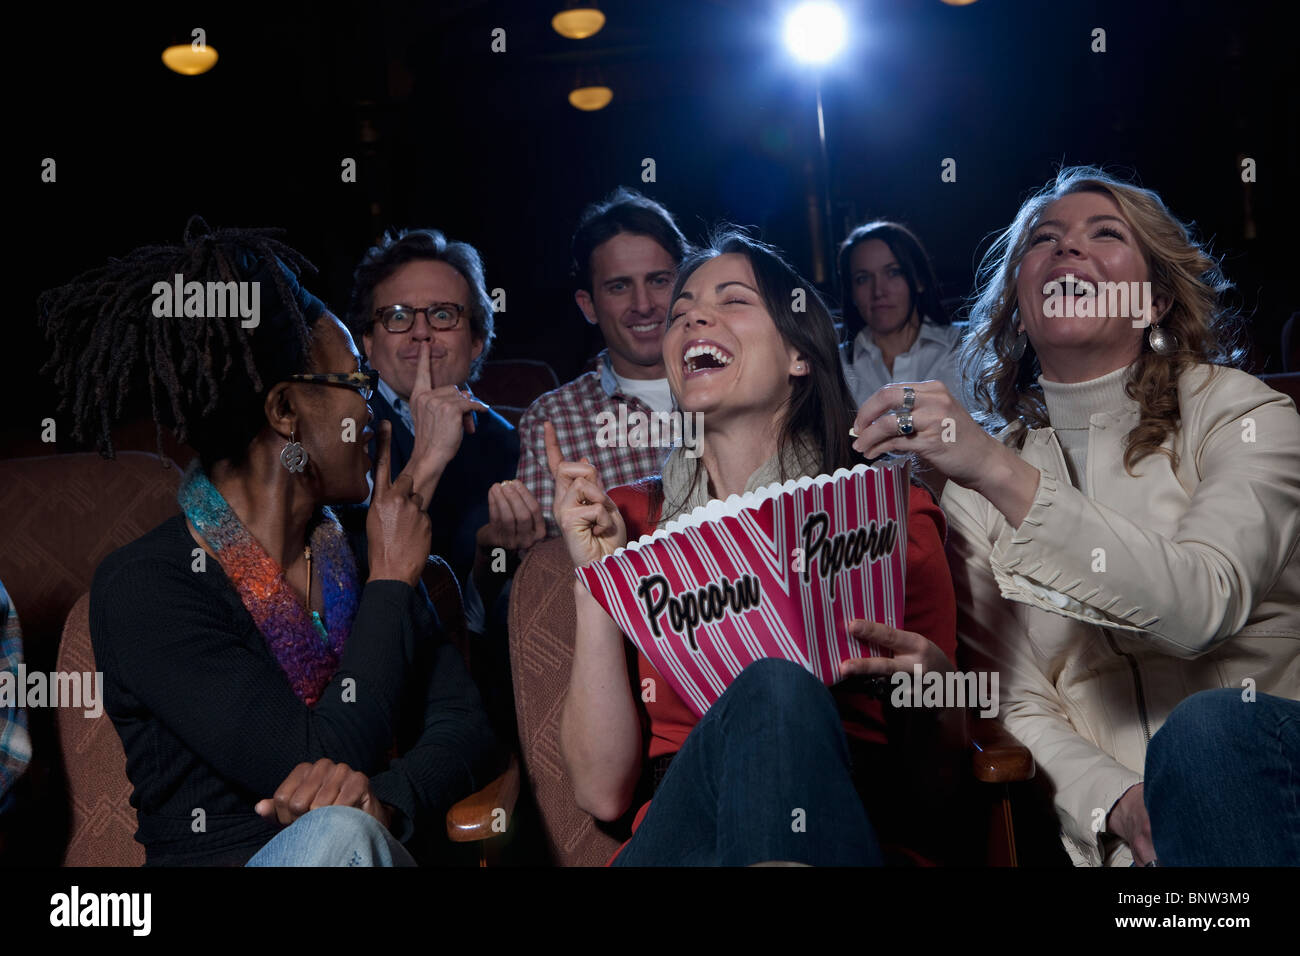 Women laughing loudly in movie theatre - Stock Image